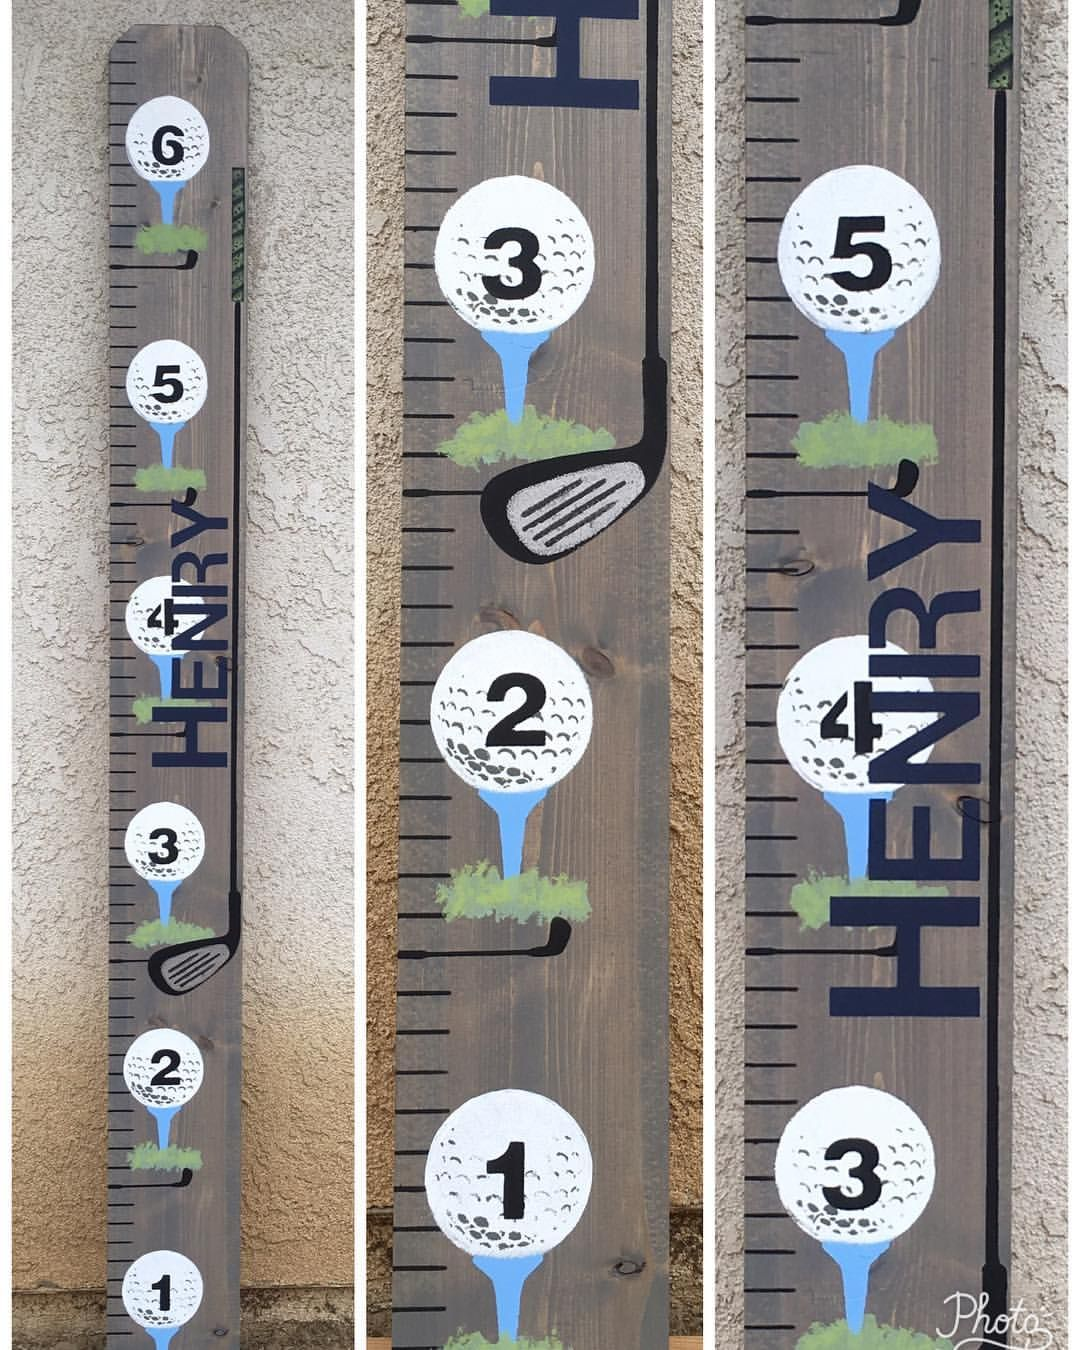 Golf custom personalized growth chart measure kids heights golf custom personalized growth chart measure kids heights interior design kids decor baby gift geenschuldenfo Choice Image